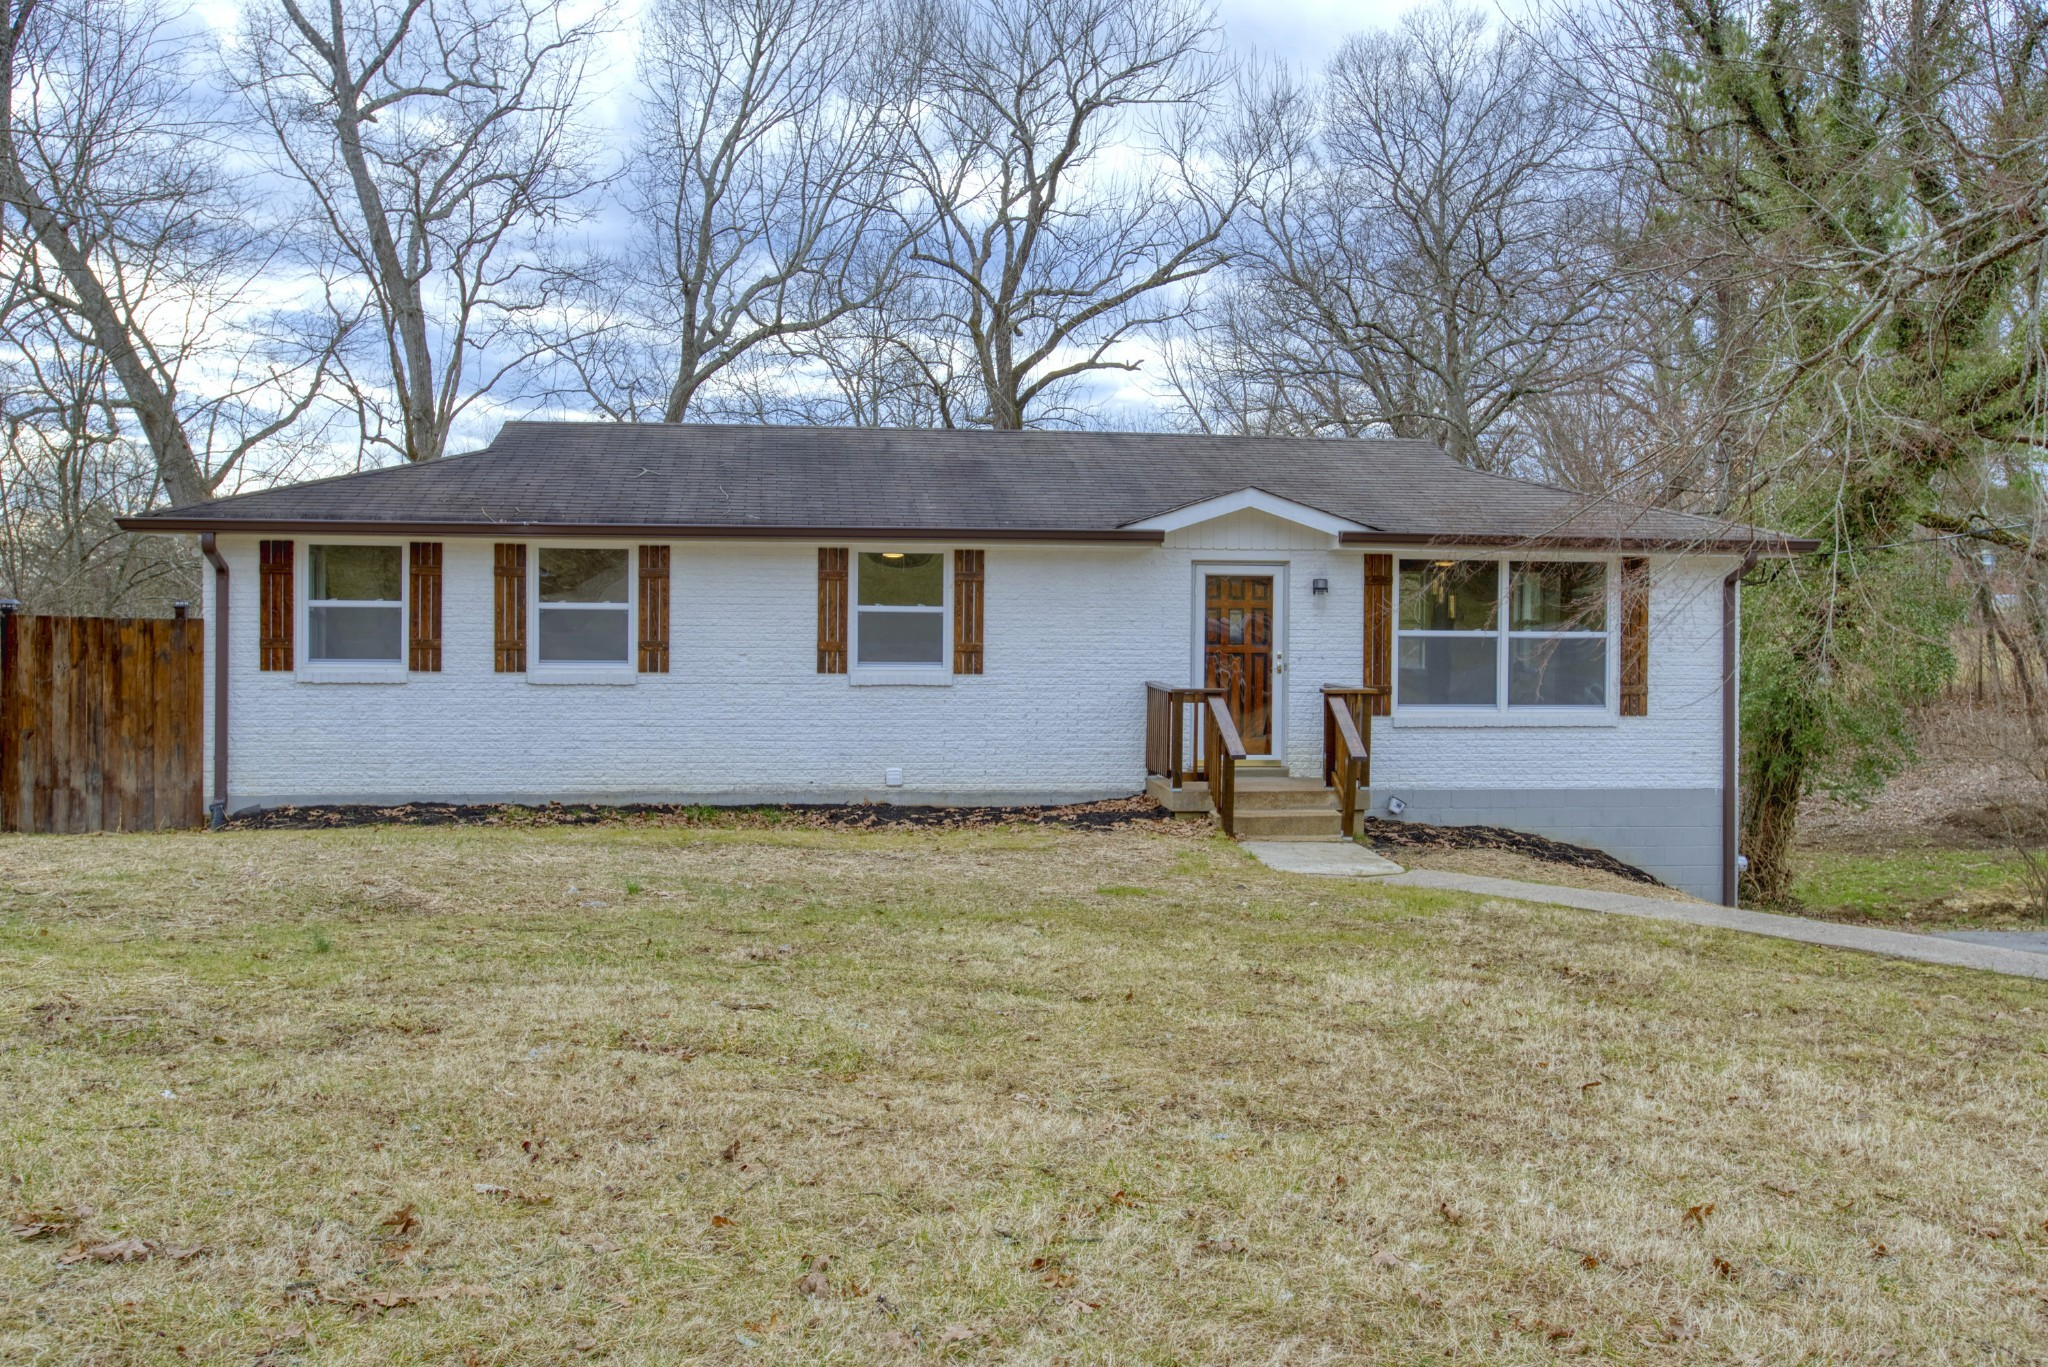 172 Cranwill Dr Property Photo - Hendersonville, TN real estate listing